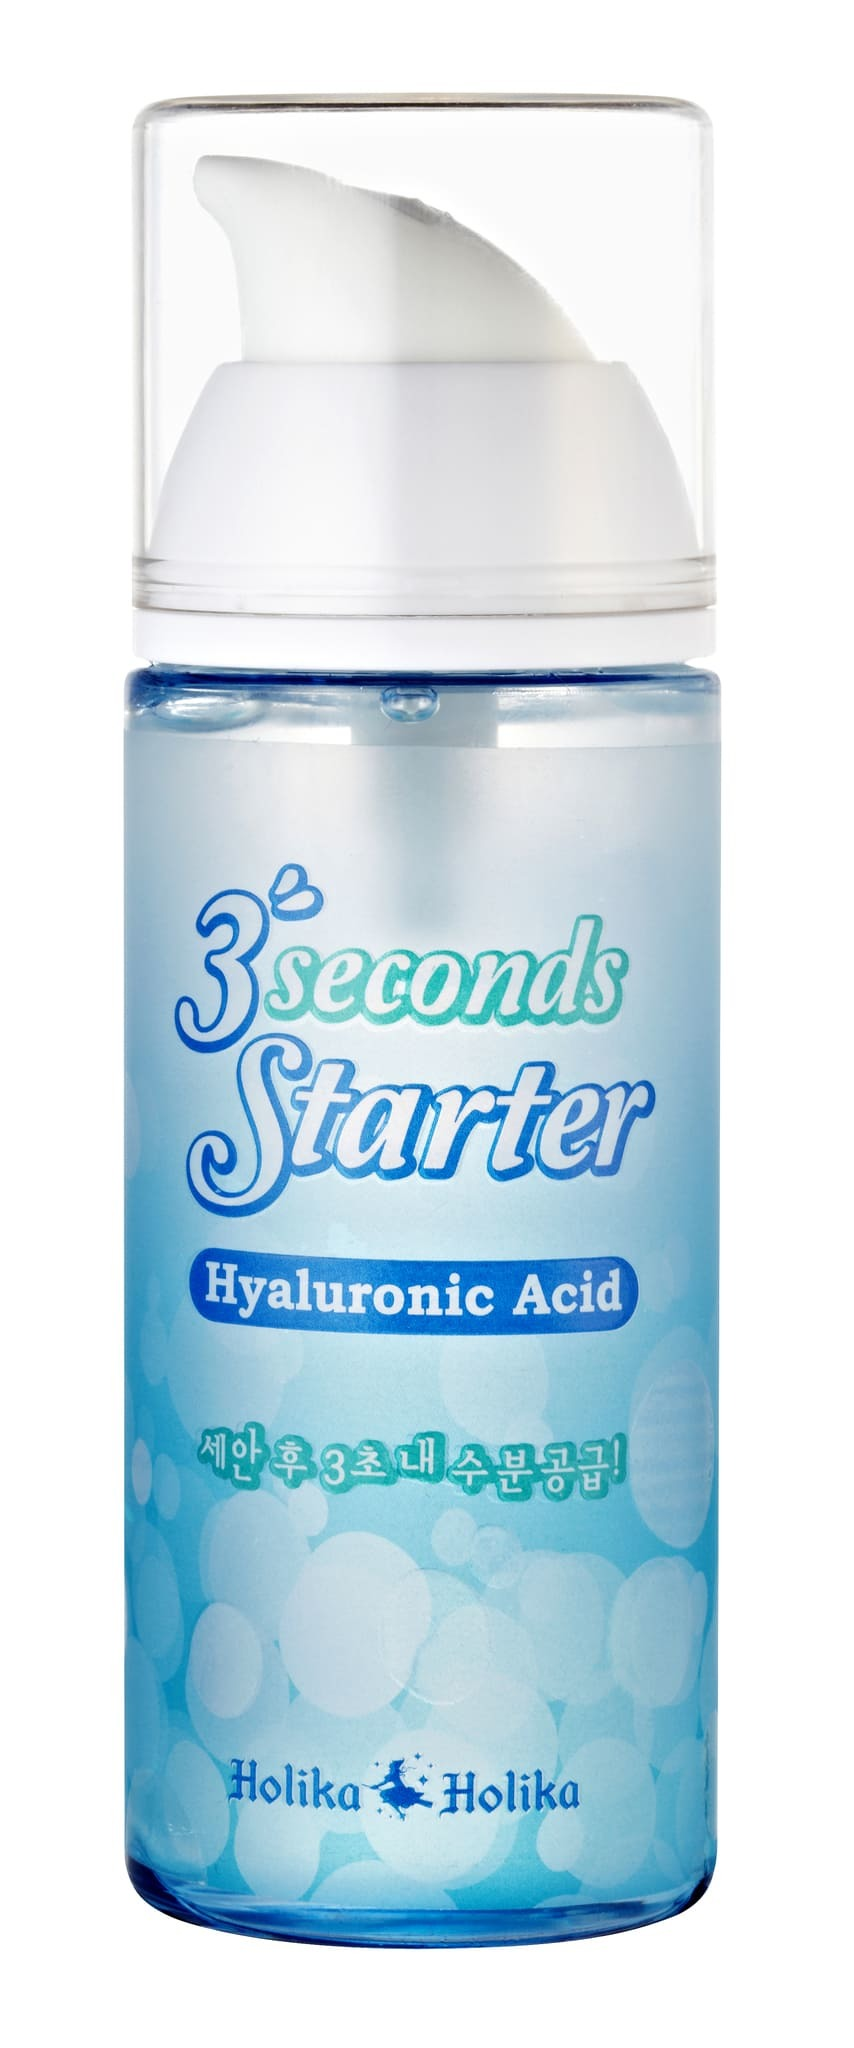 Стартер-эссенция для лица с гиалуроновой кислотой - Holika Holika 3 Seconds Starter Hyaluronic Acid